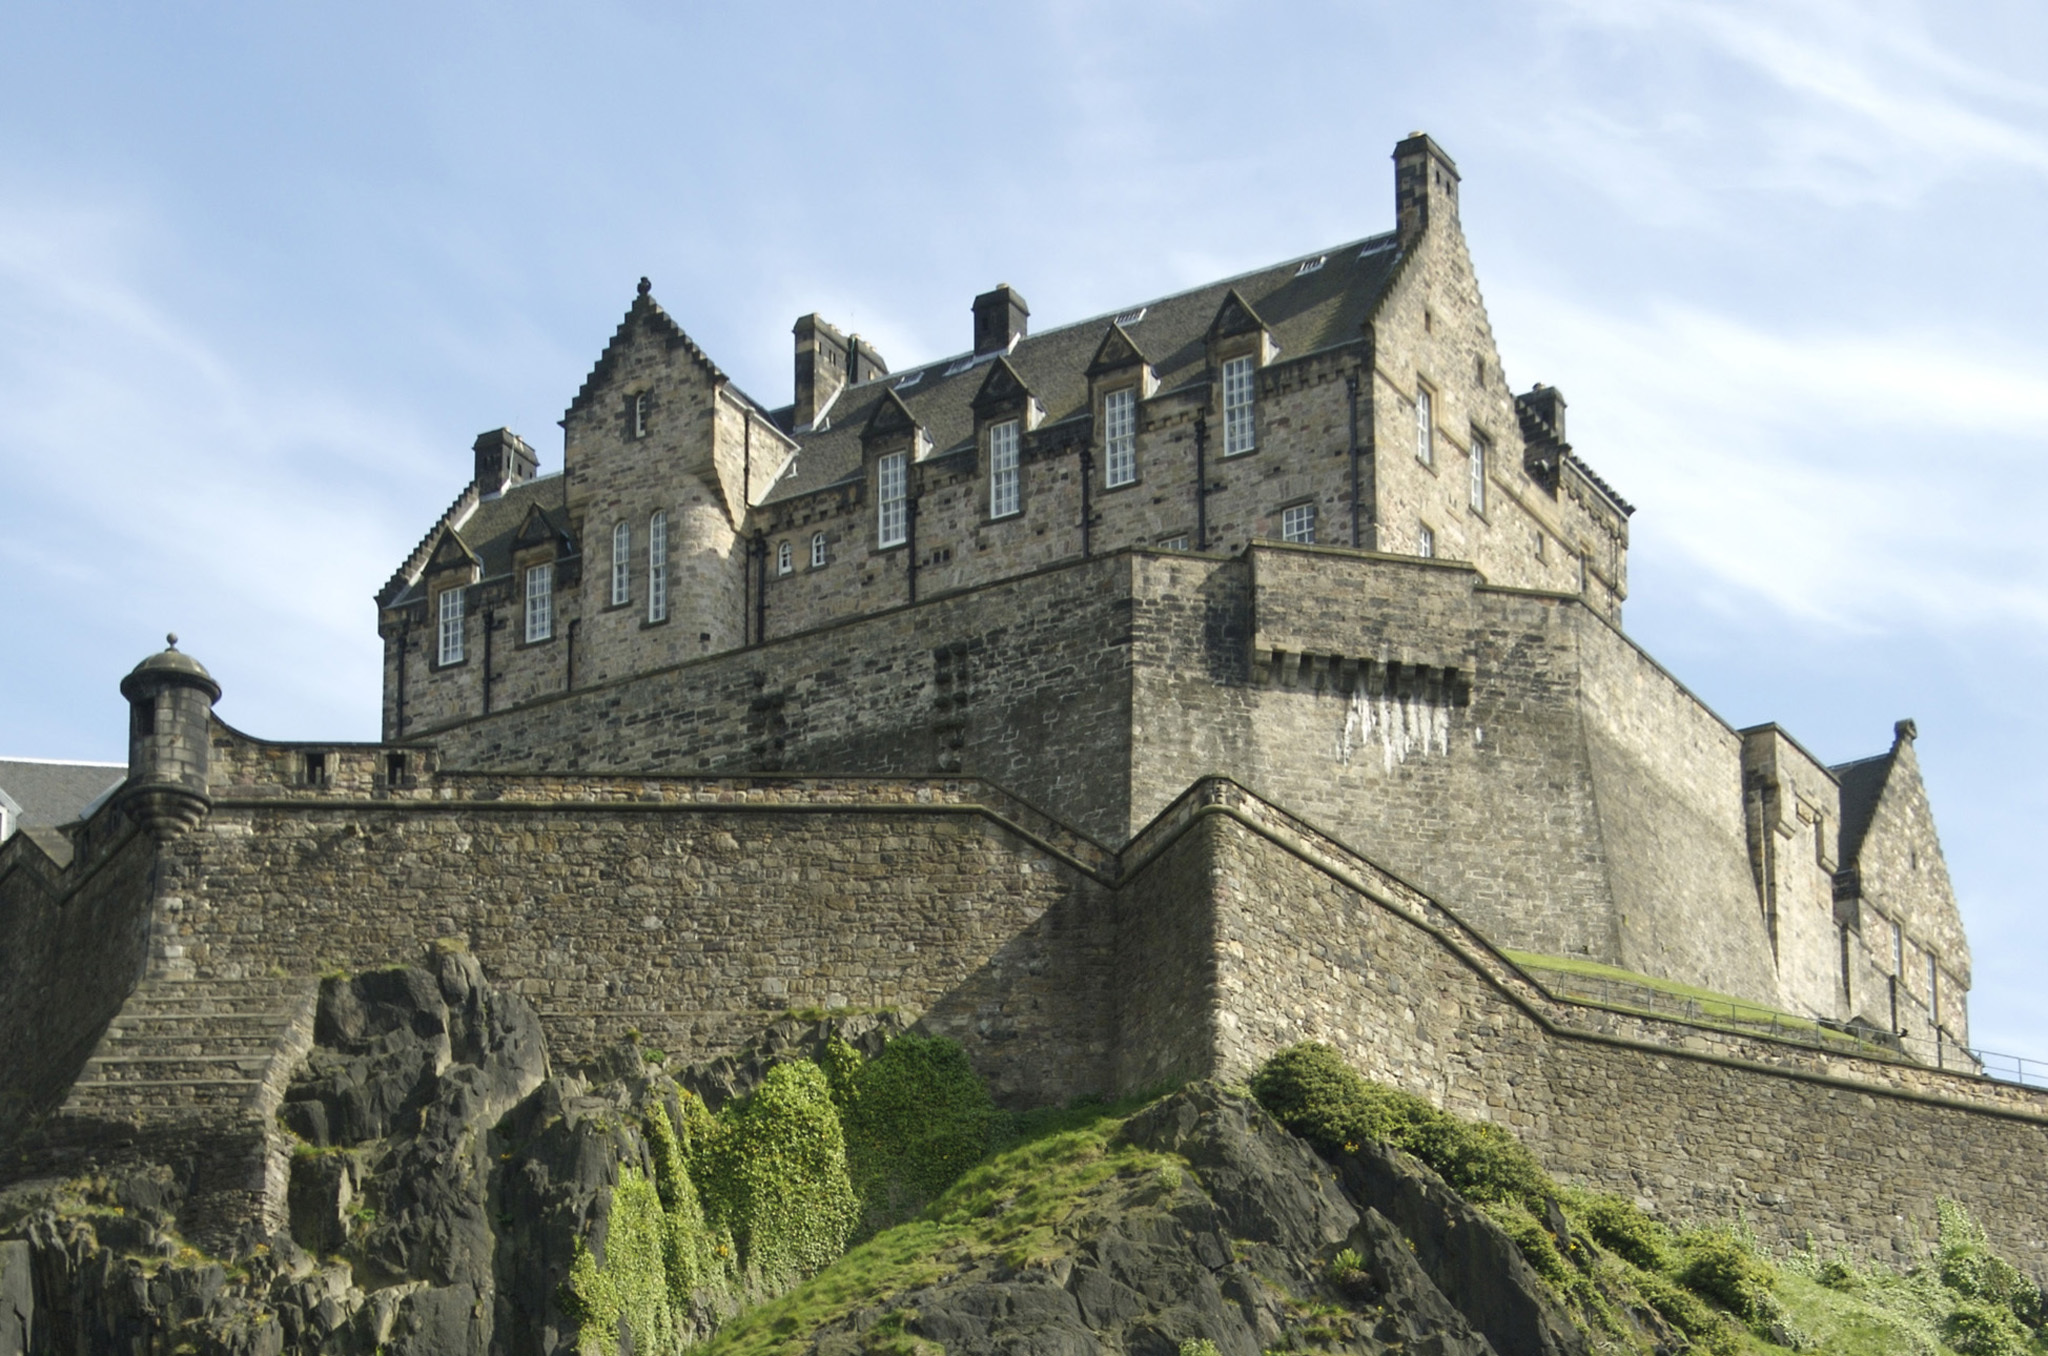 Enjoy the view from Edinburgh Castle